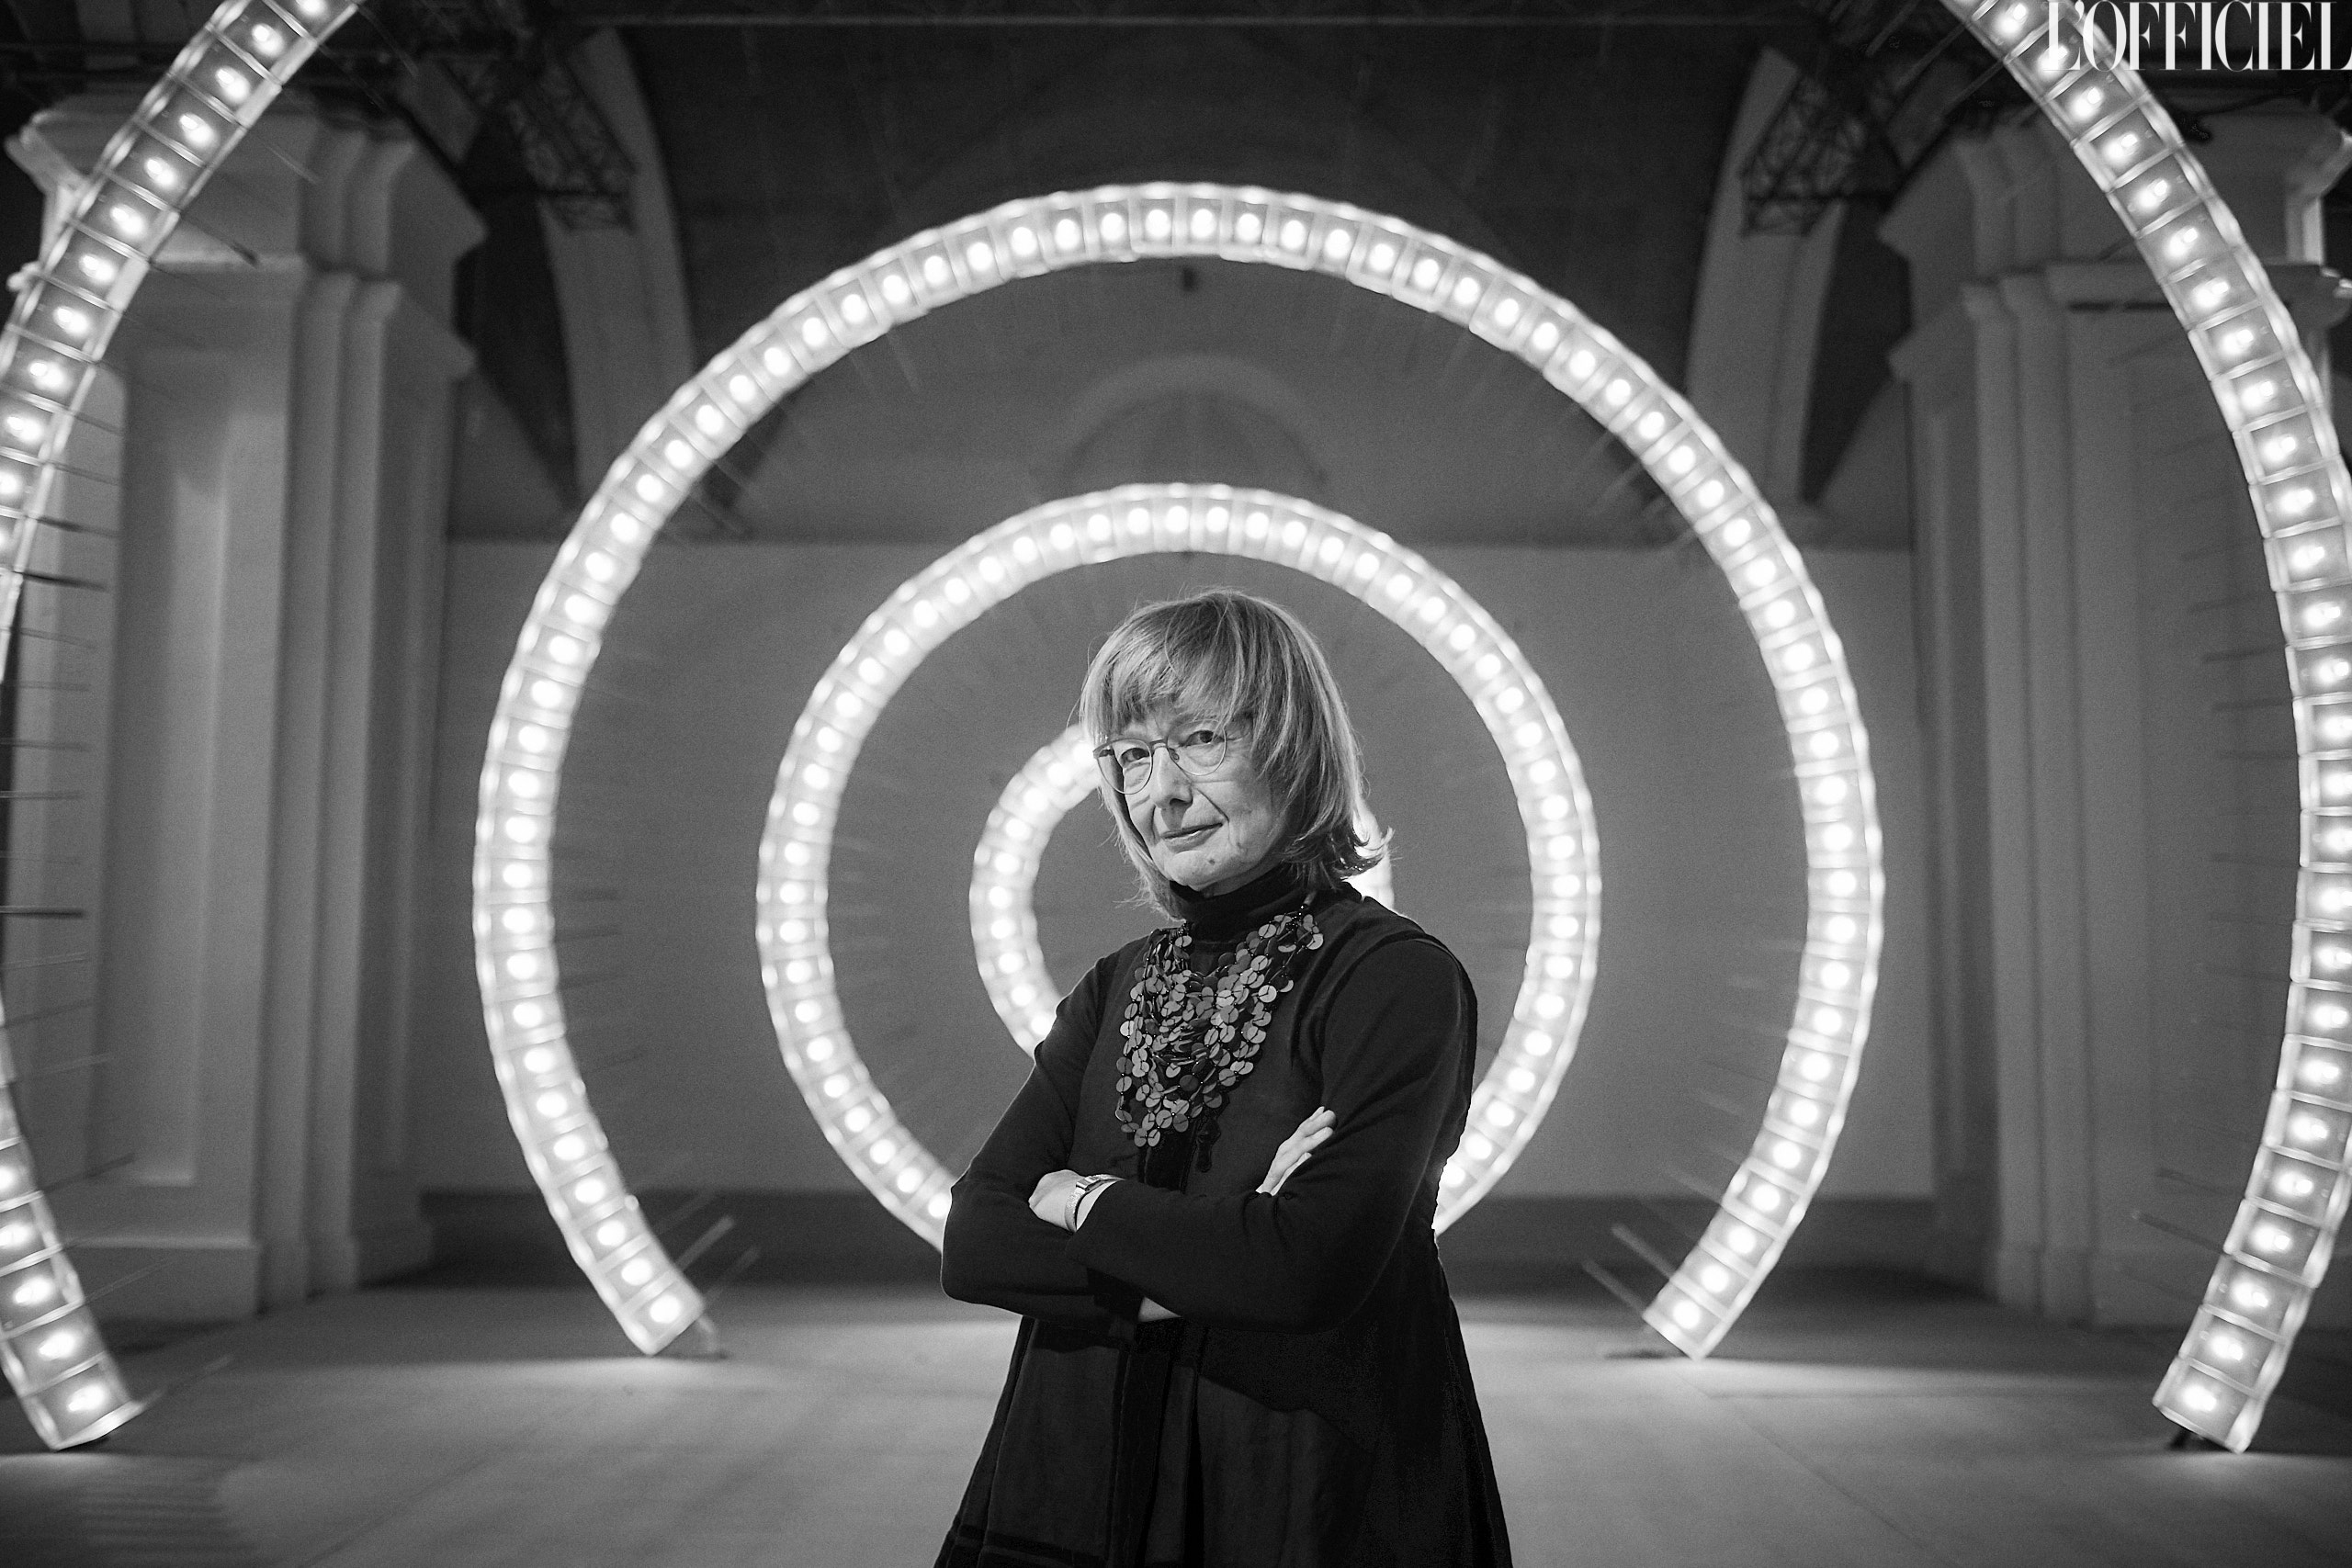 black and white photo of a woman standing in front of circular light fixtures